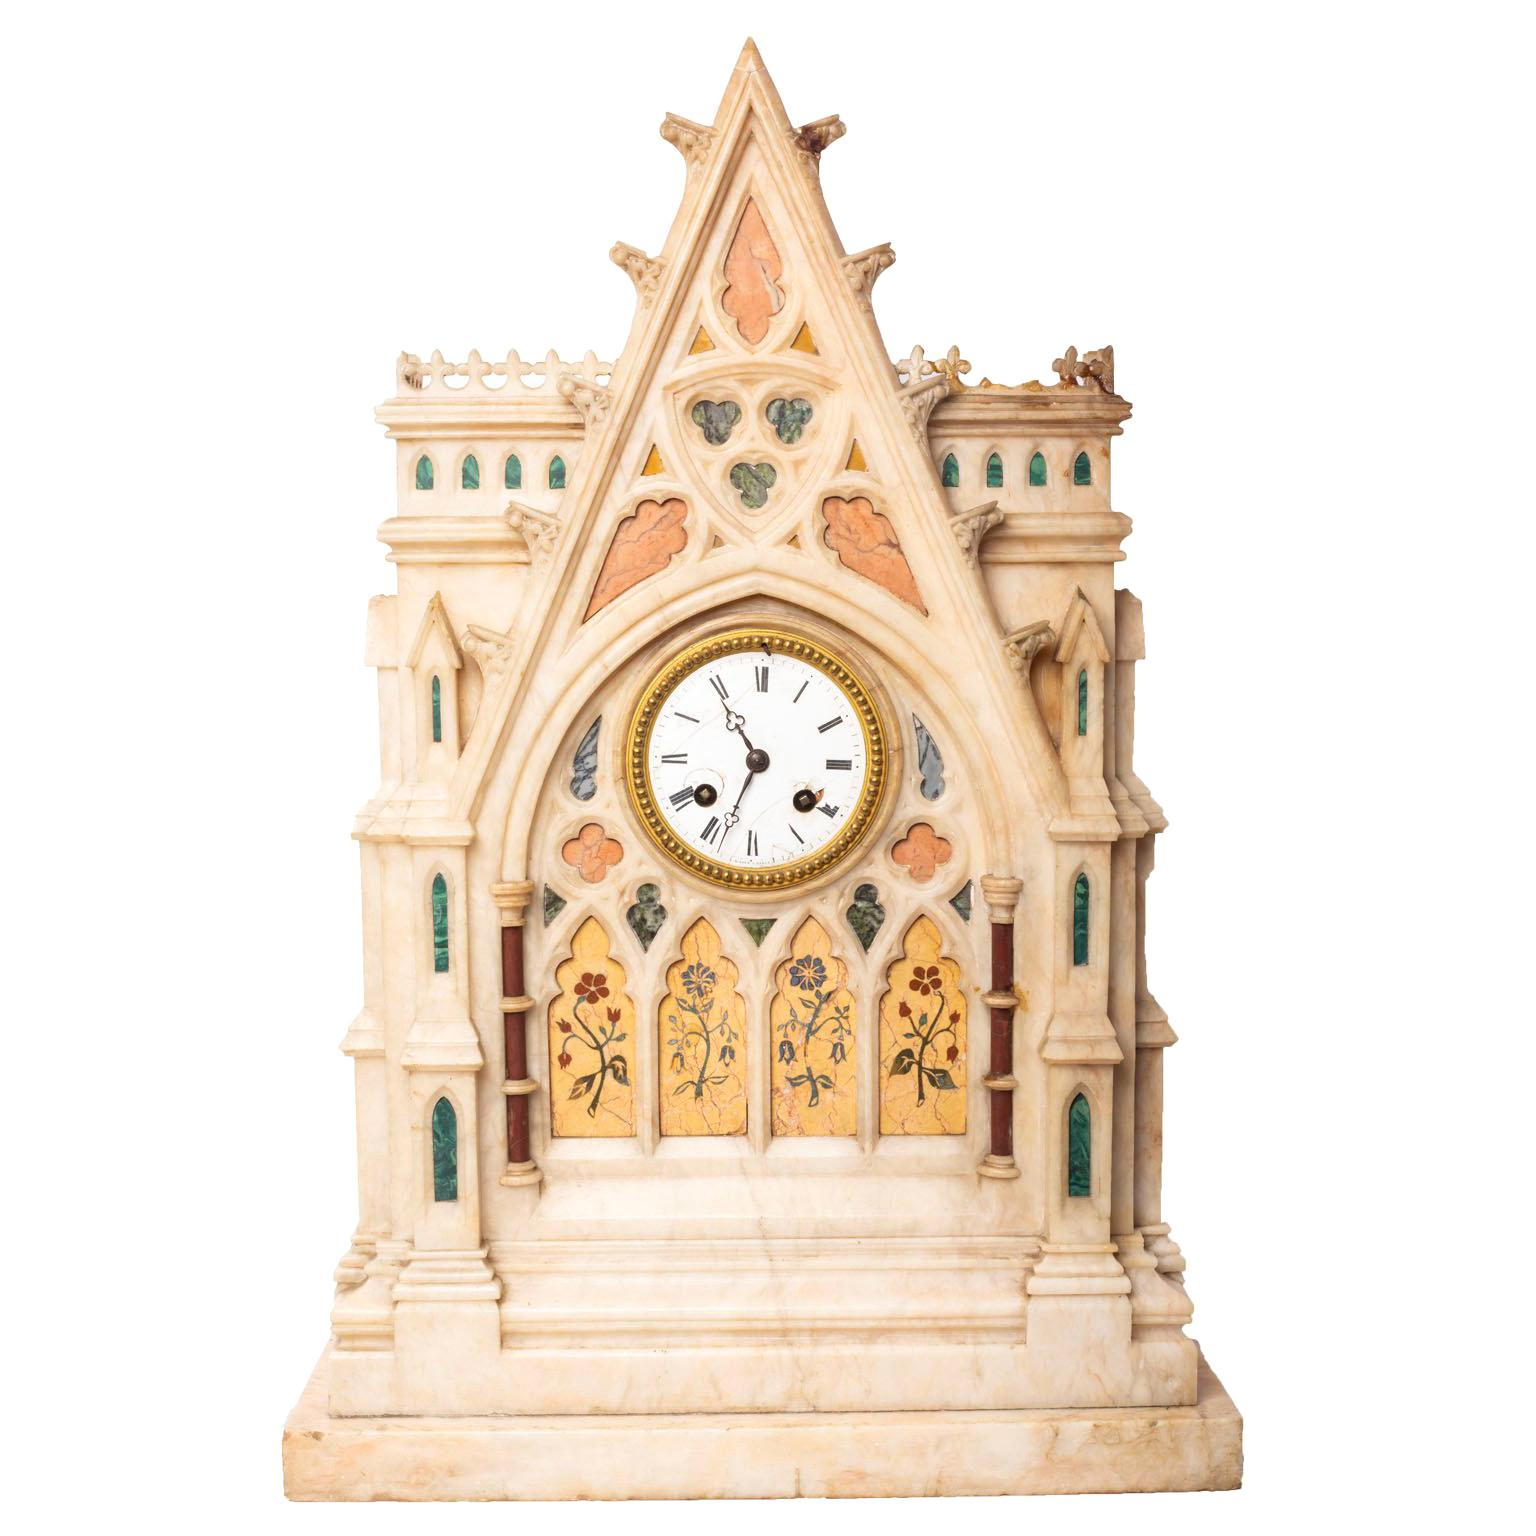 French Gothic Style Inlaid Marble Mantel Clock Dial Signed H. Azur à Paris